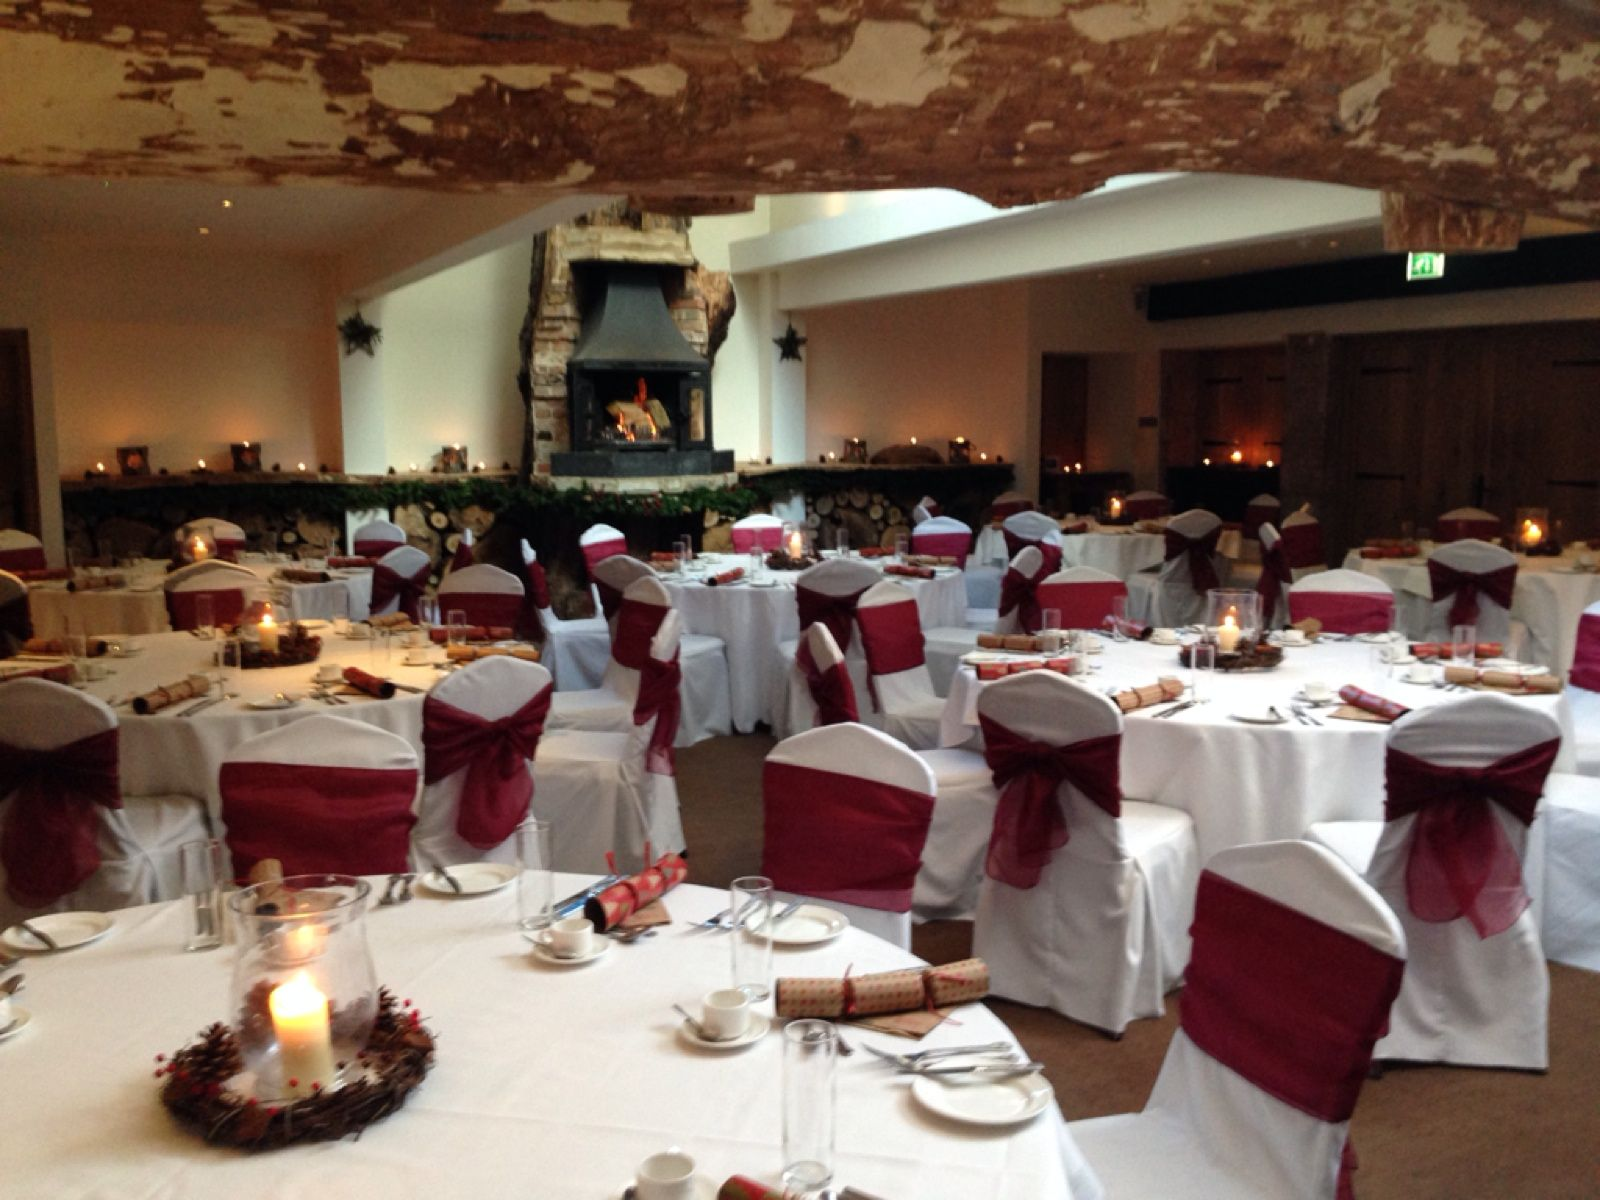 Our first Christmas Lunch in our new Chestnut Room